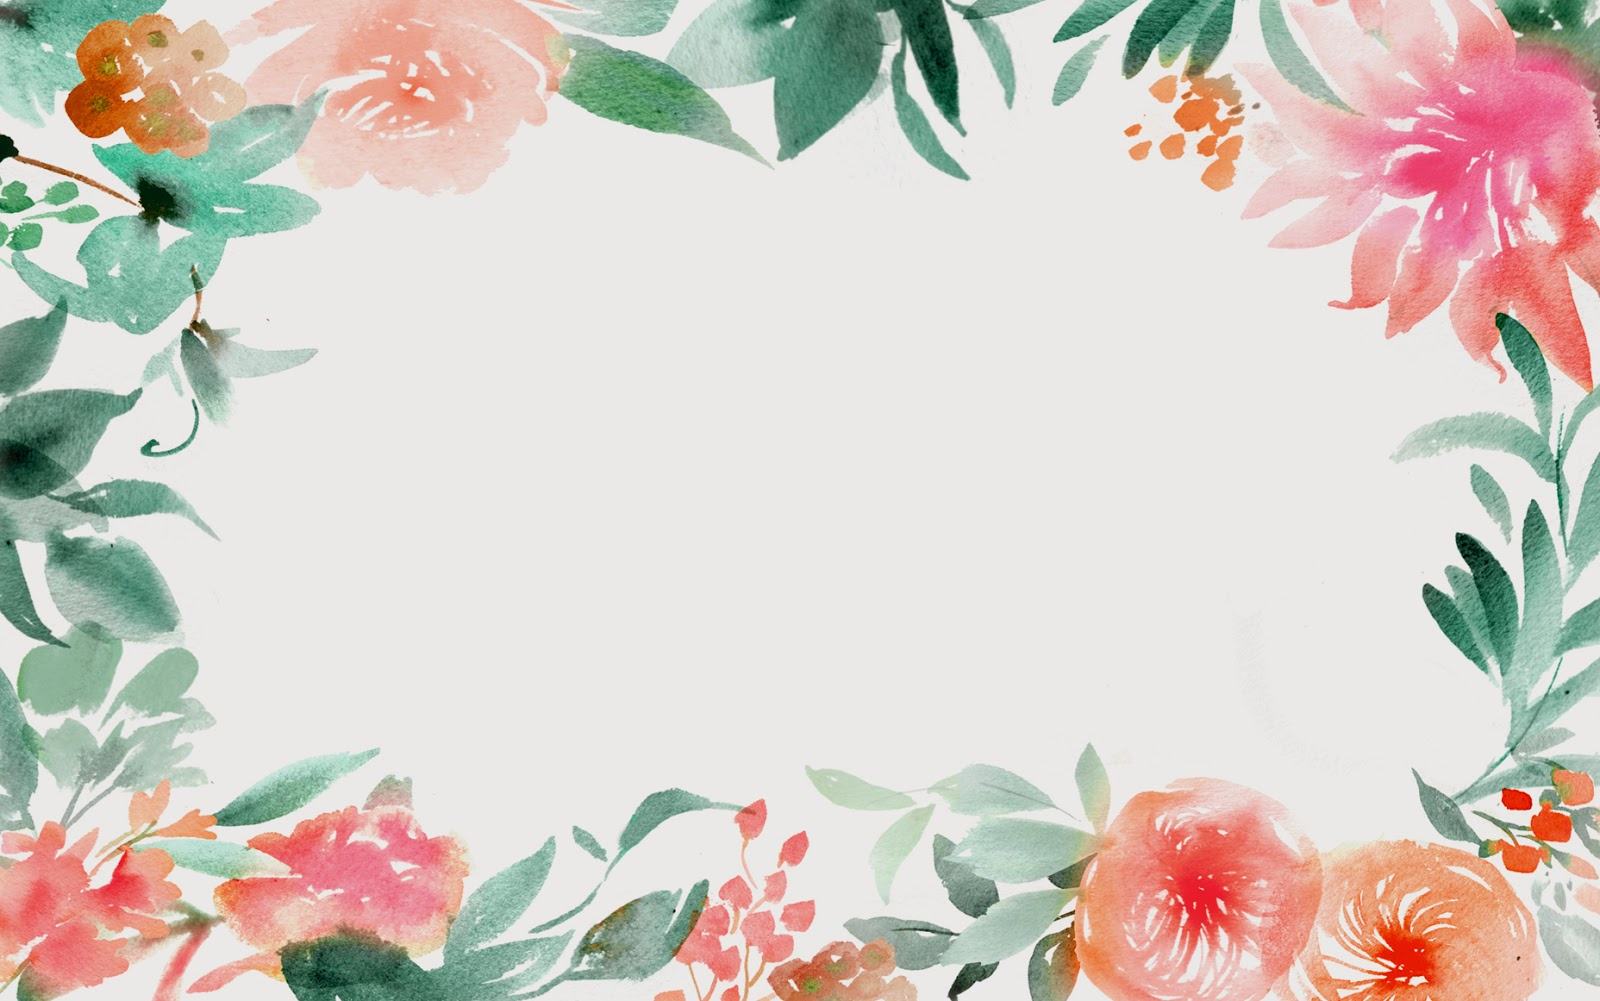 The Best Free Desktop Watercolor Images Download From 314 Free